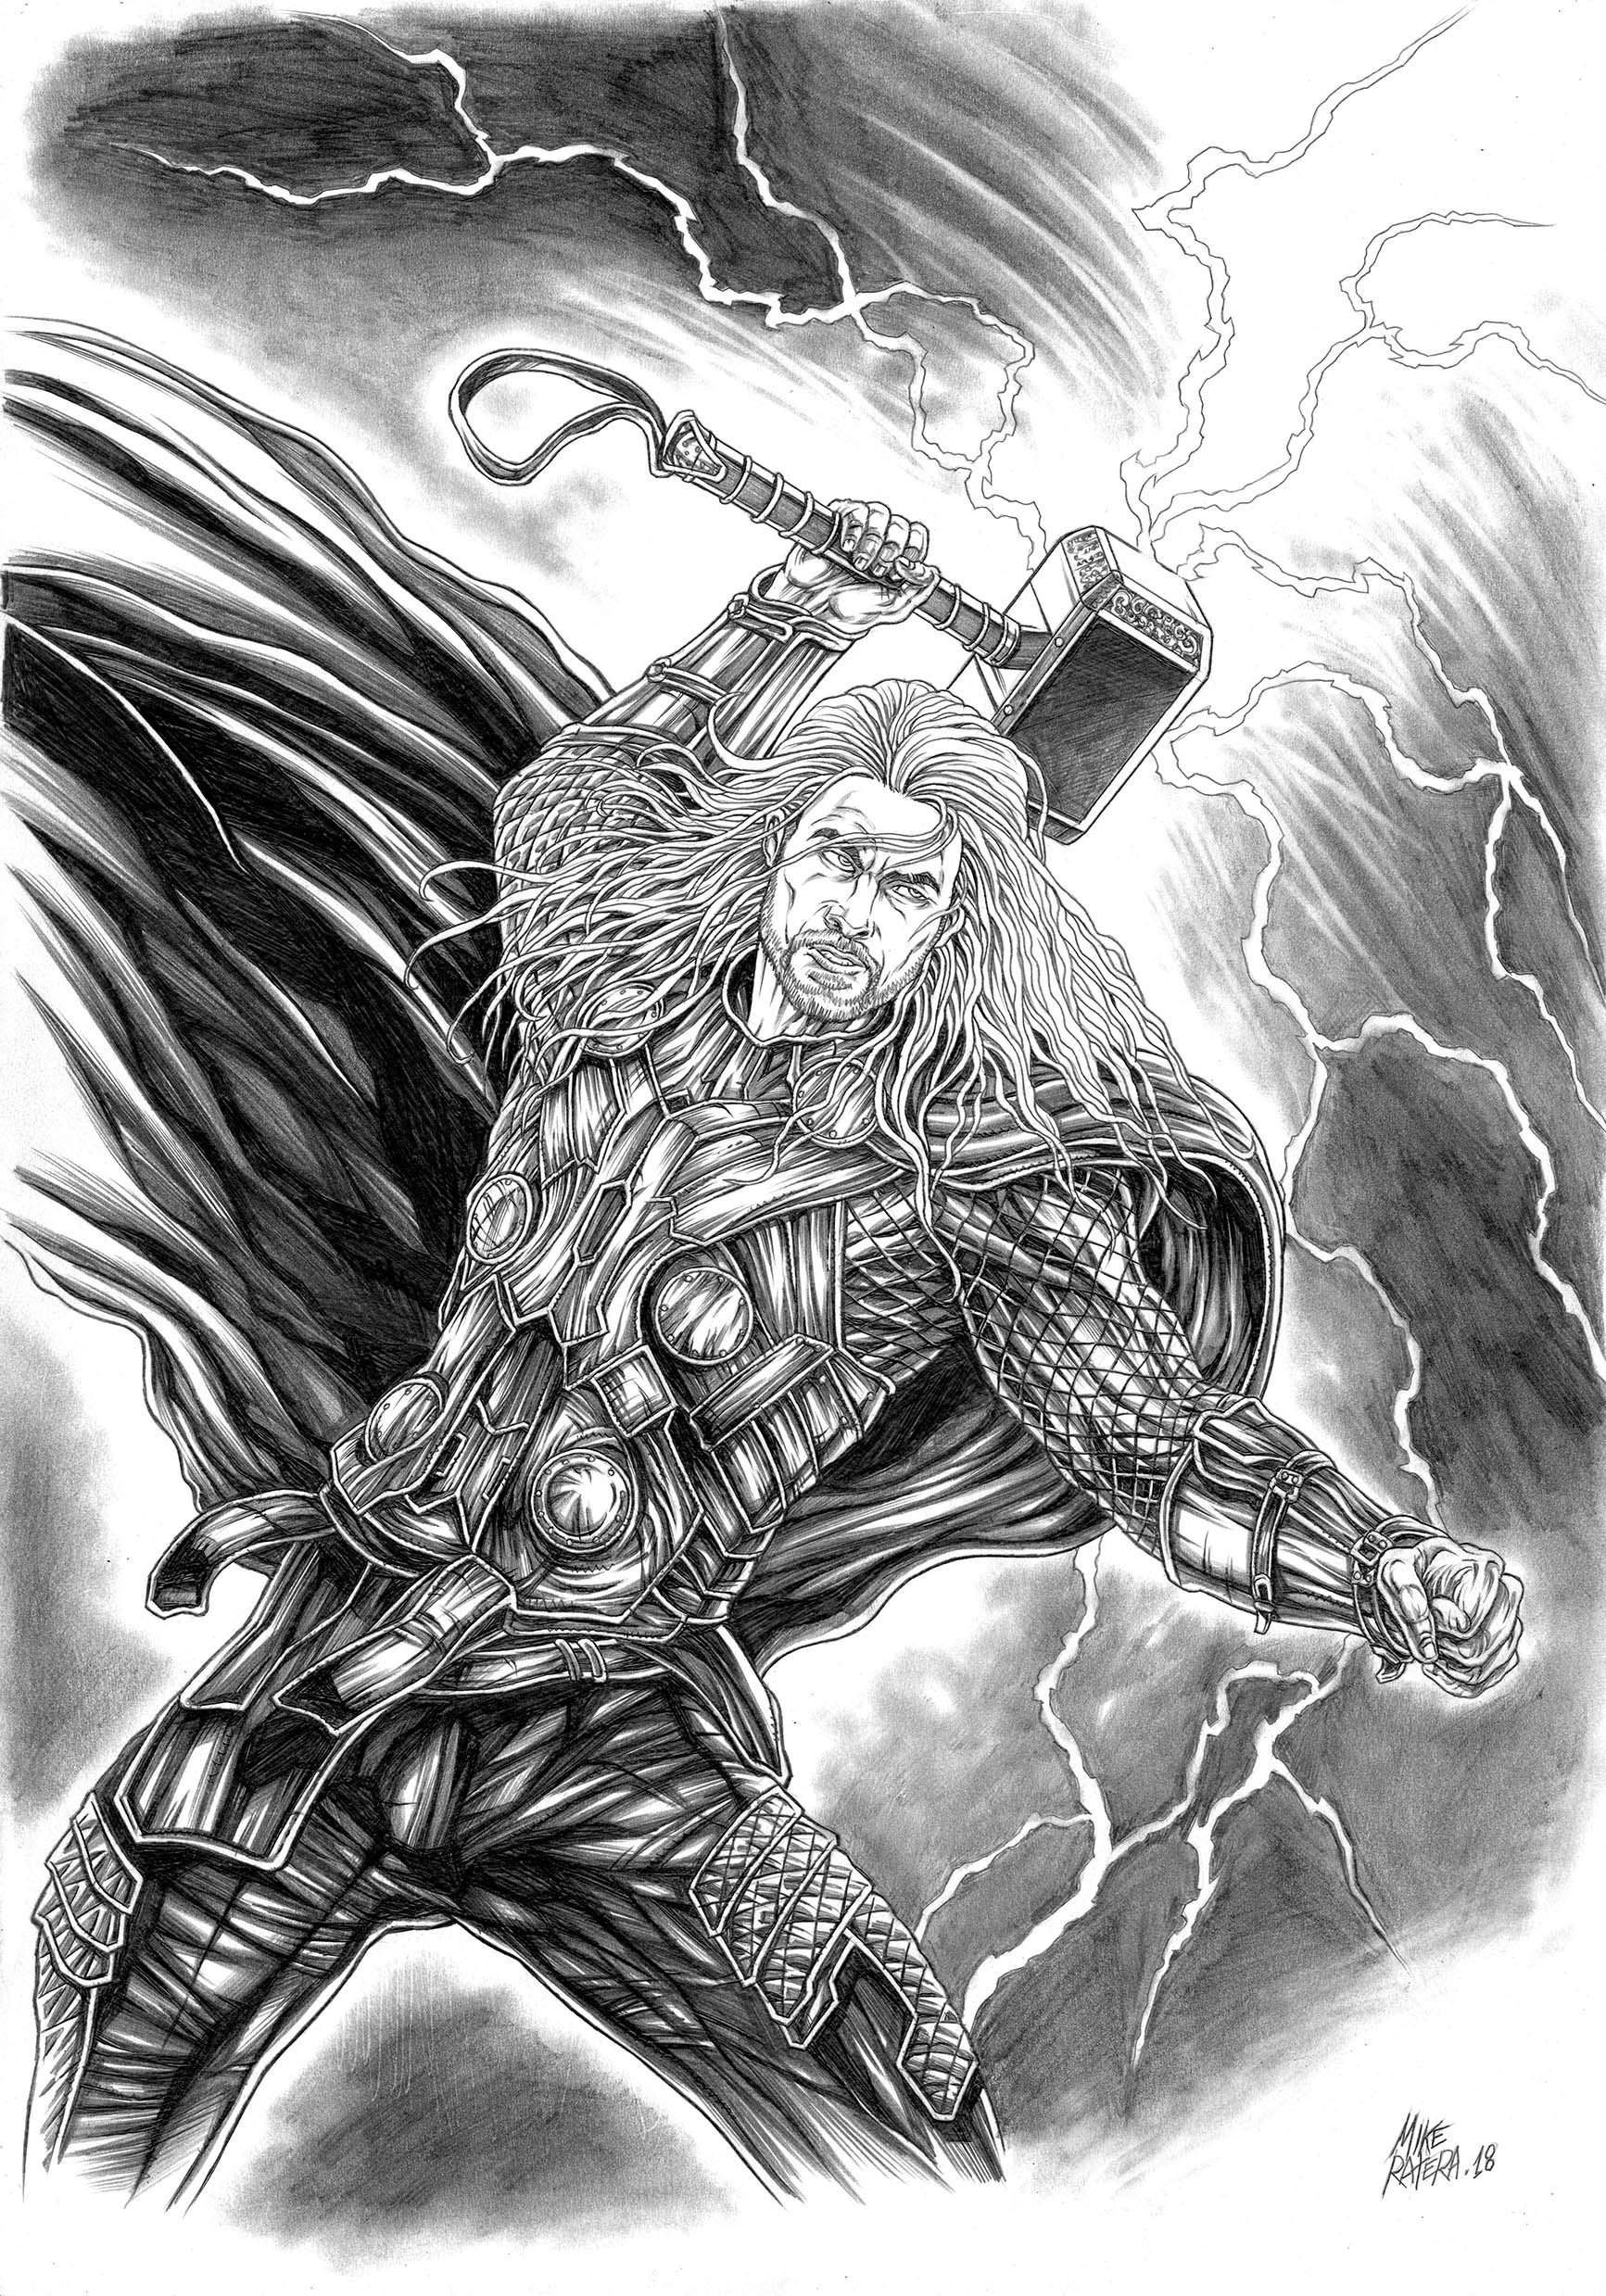 Mike ratera thor 1 a3 3